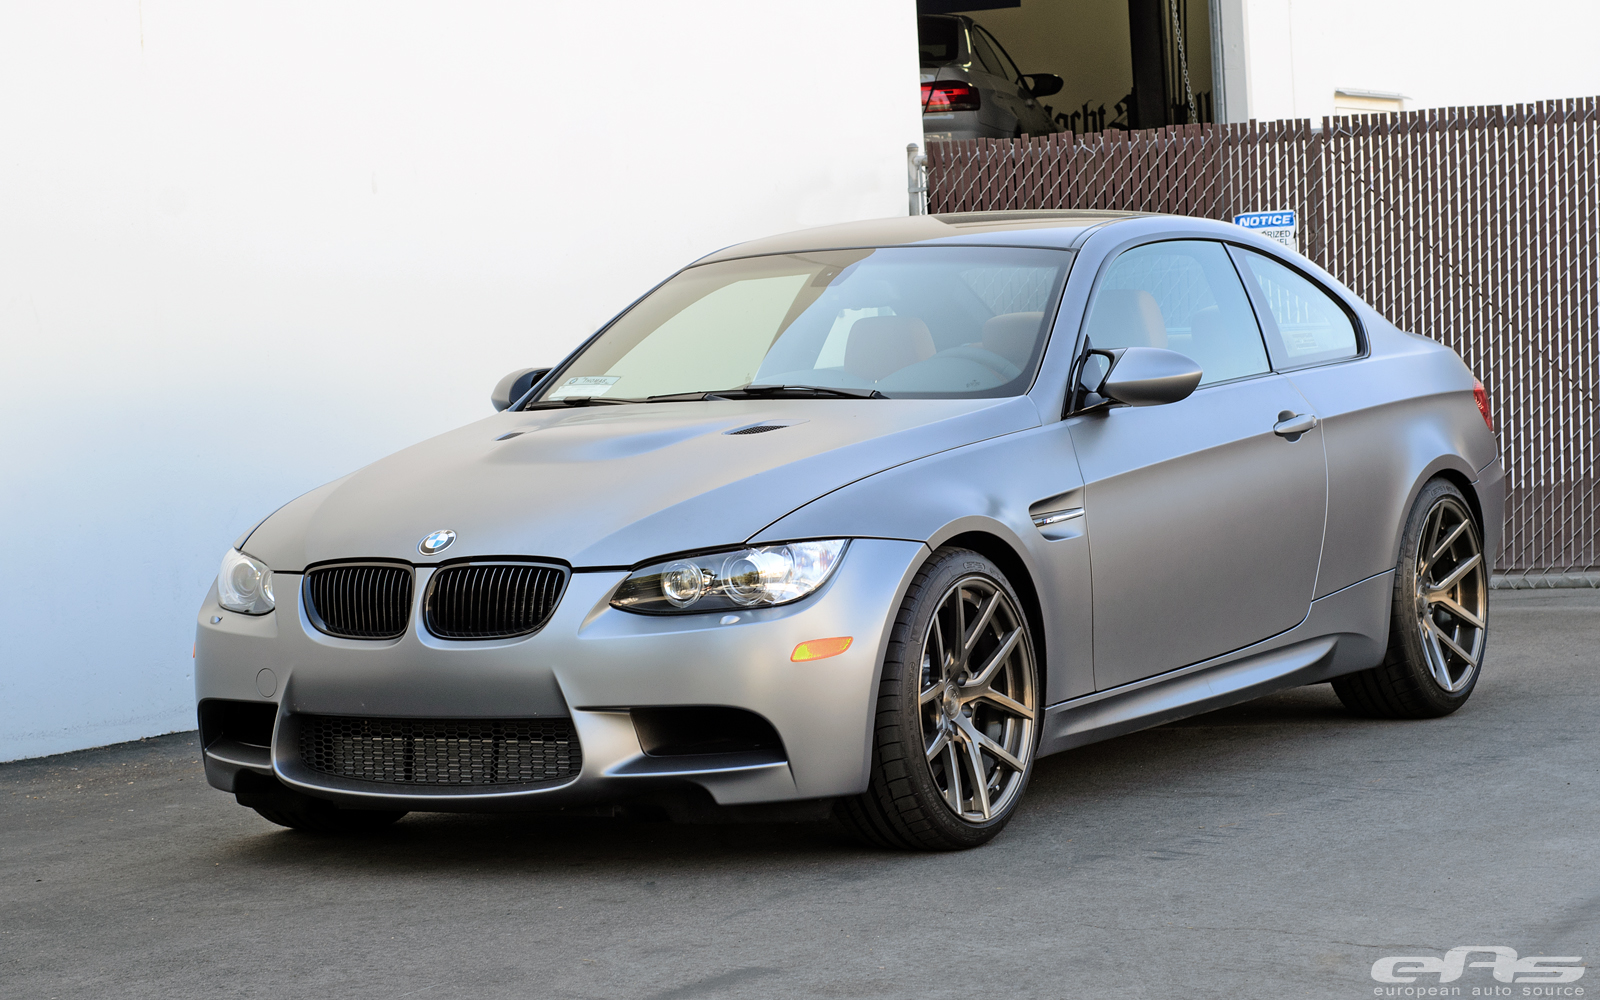 hight resolution of frozen silver bmw e92 m3 with rust brown leather looks good